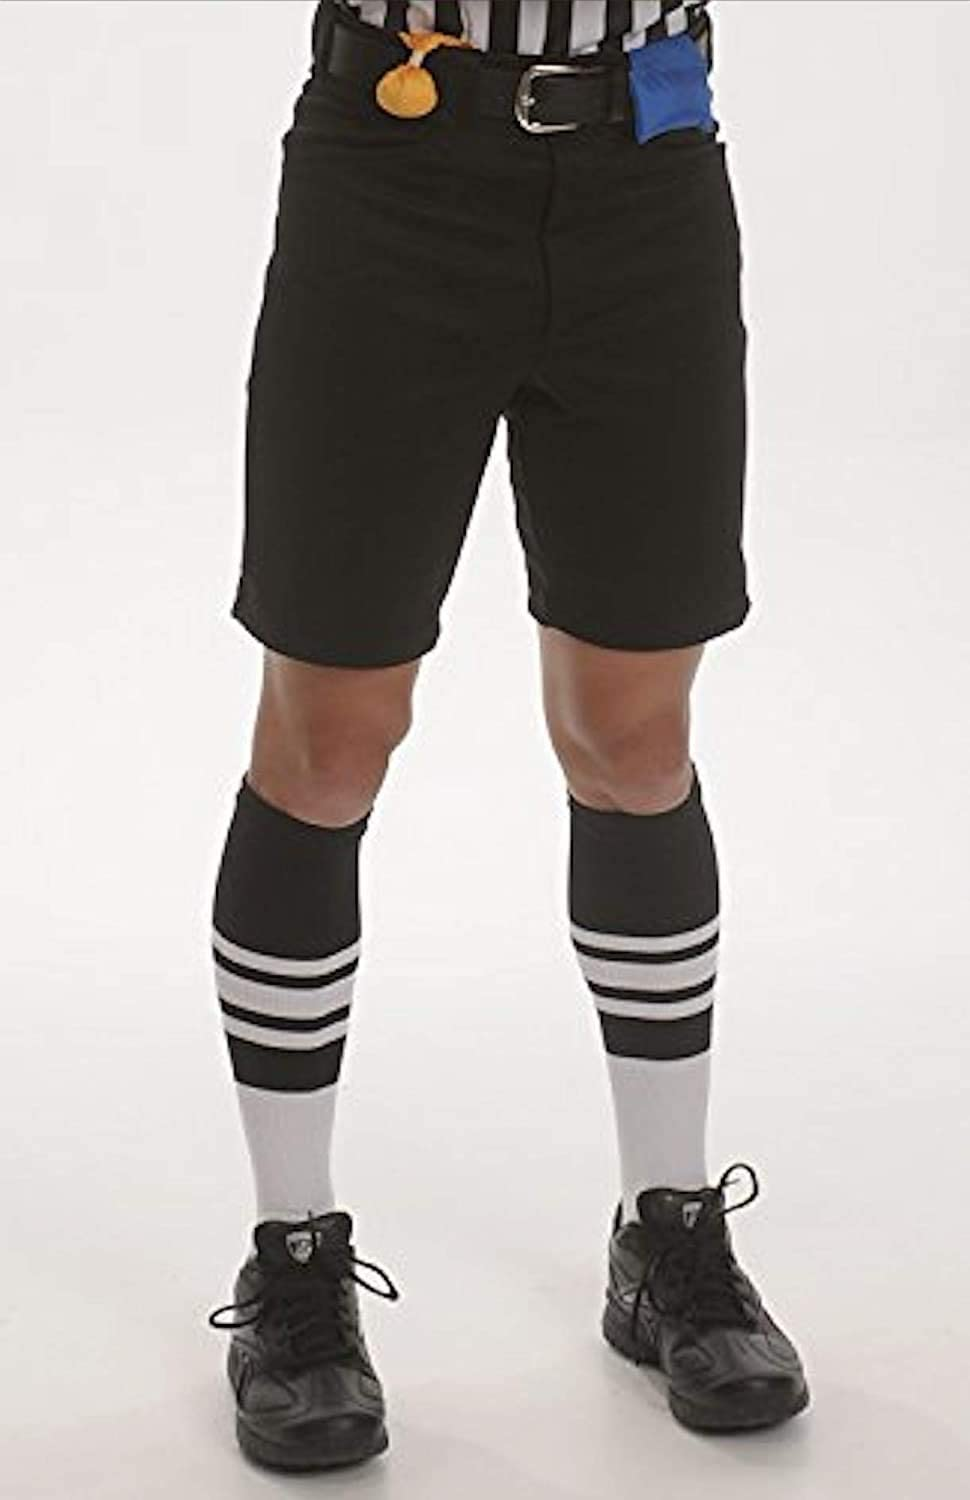 Smitty FBS-170 Football Lacrosse Shorts Double 9